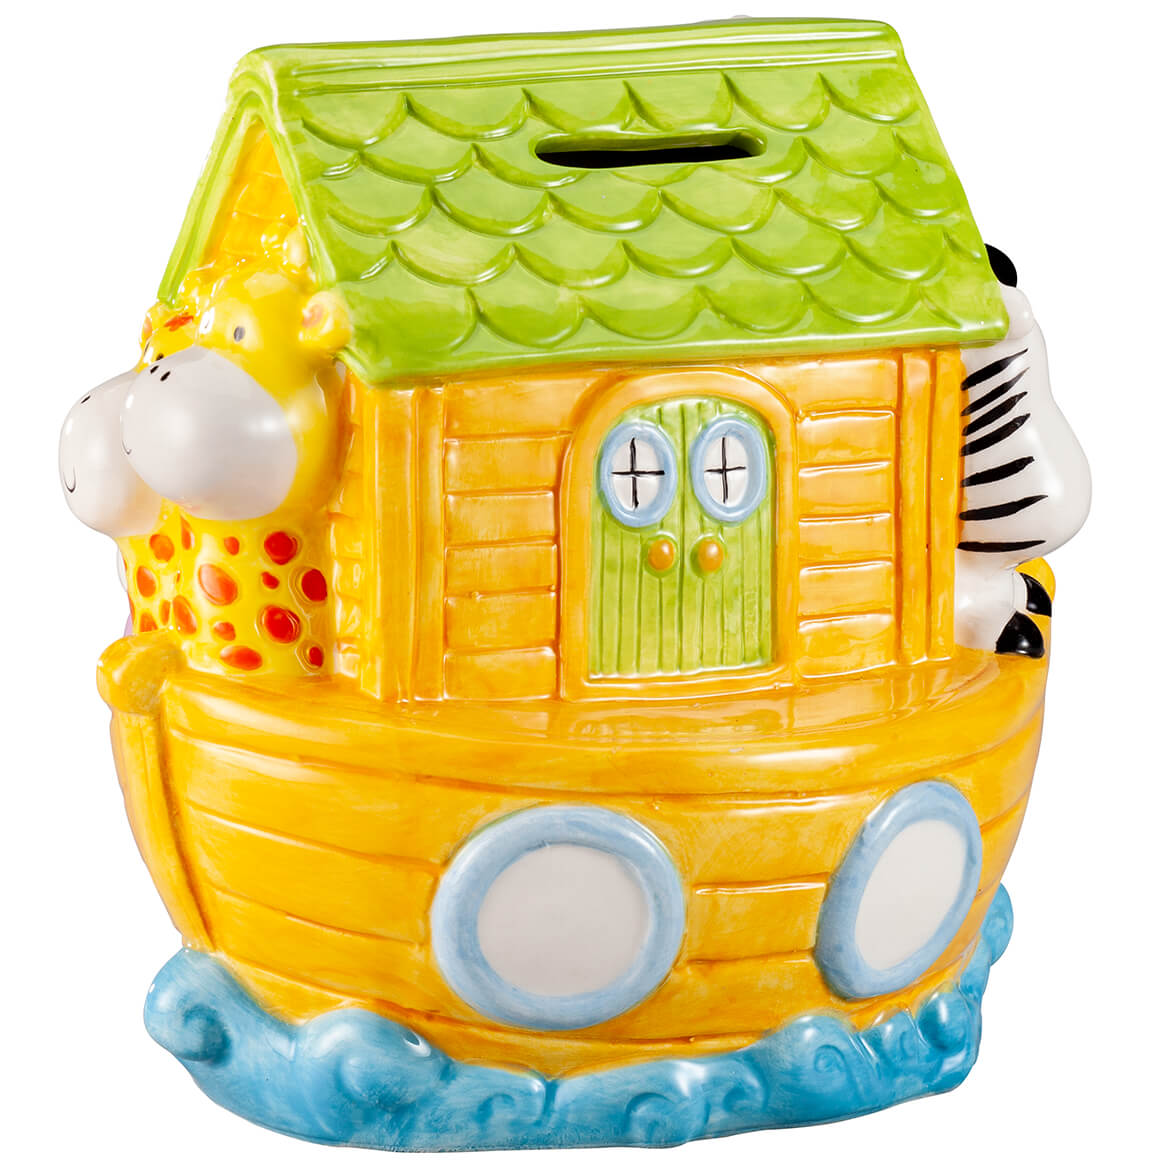 Personalized Noah's Ark Bank-367968